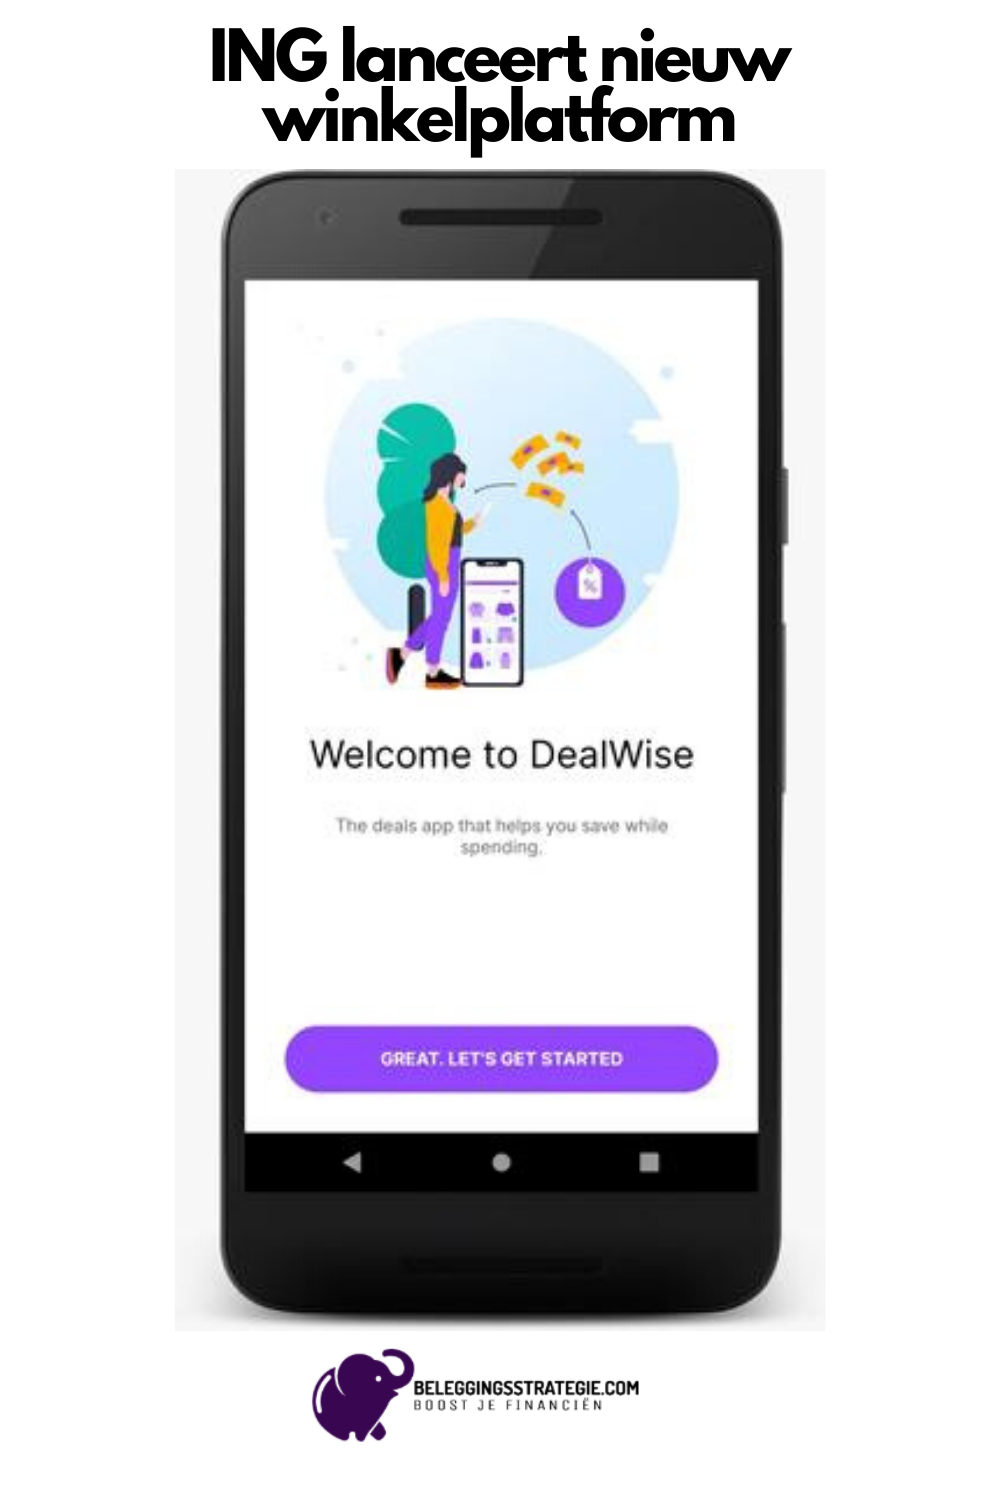 Dealwise